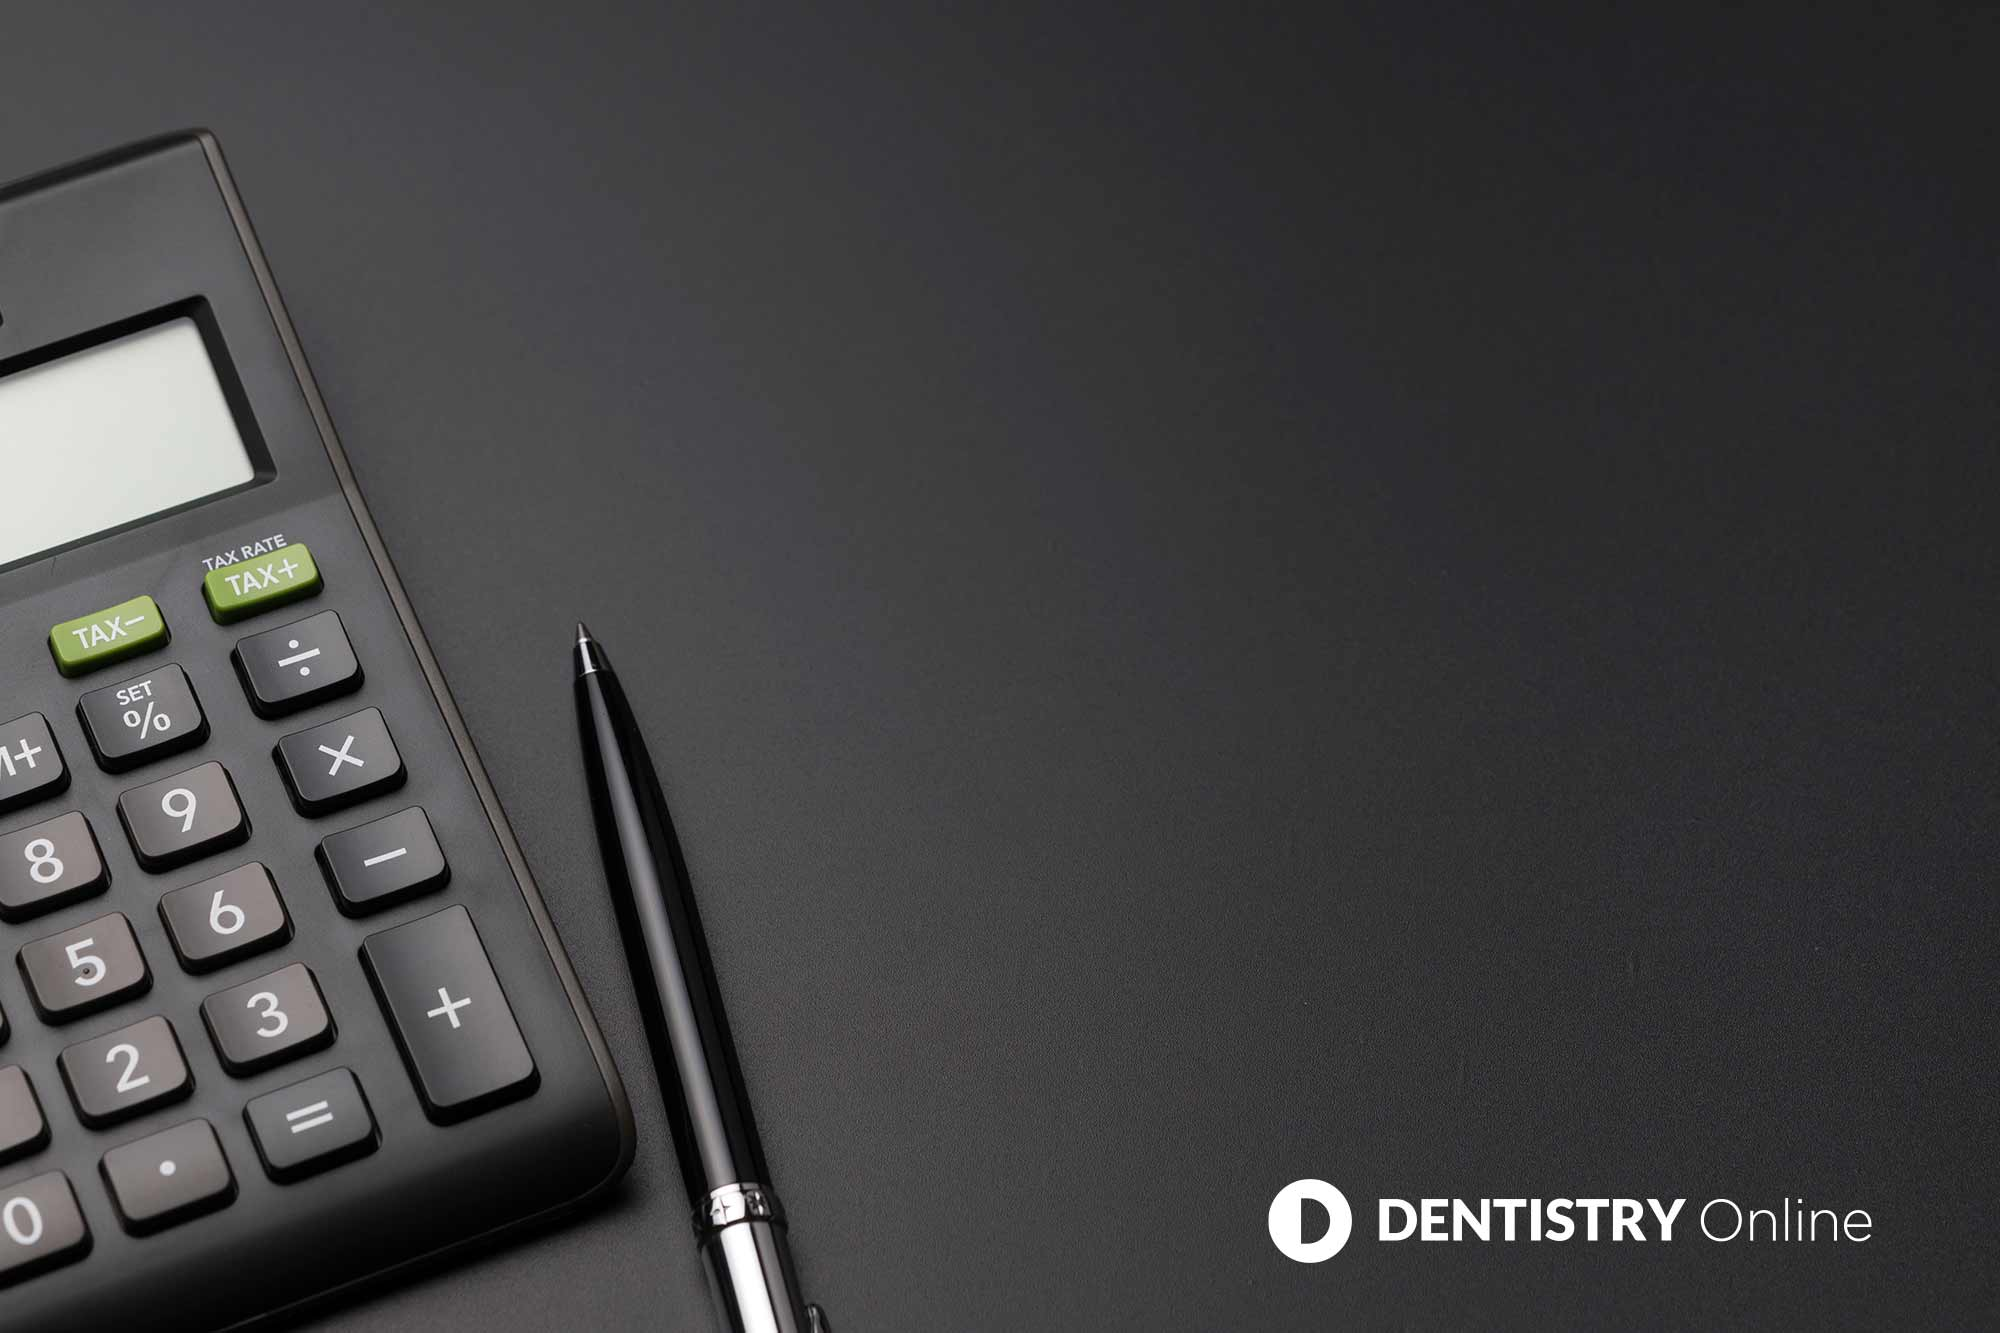 Shoaib Khan explores the tax questions associated with both self-employed dentists and those working for limited companies